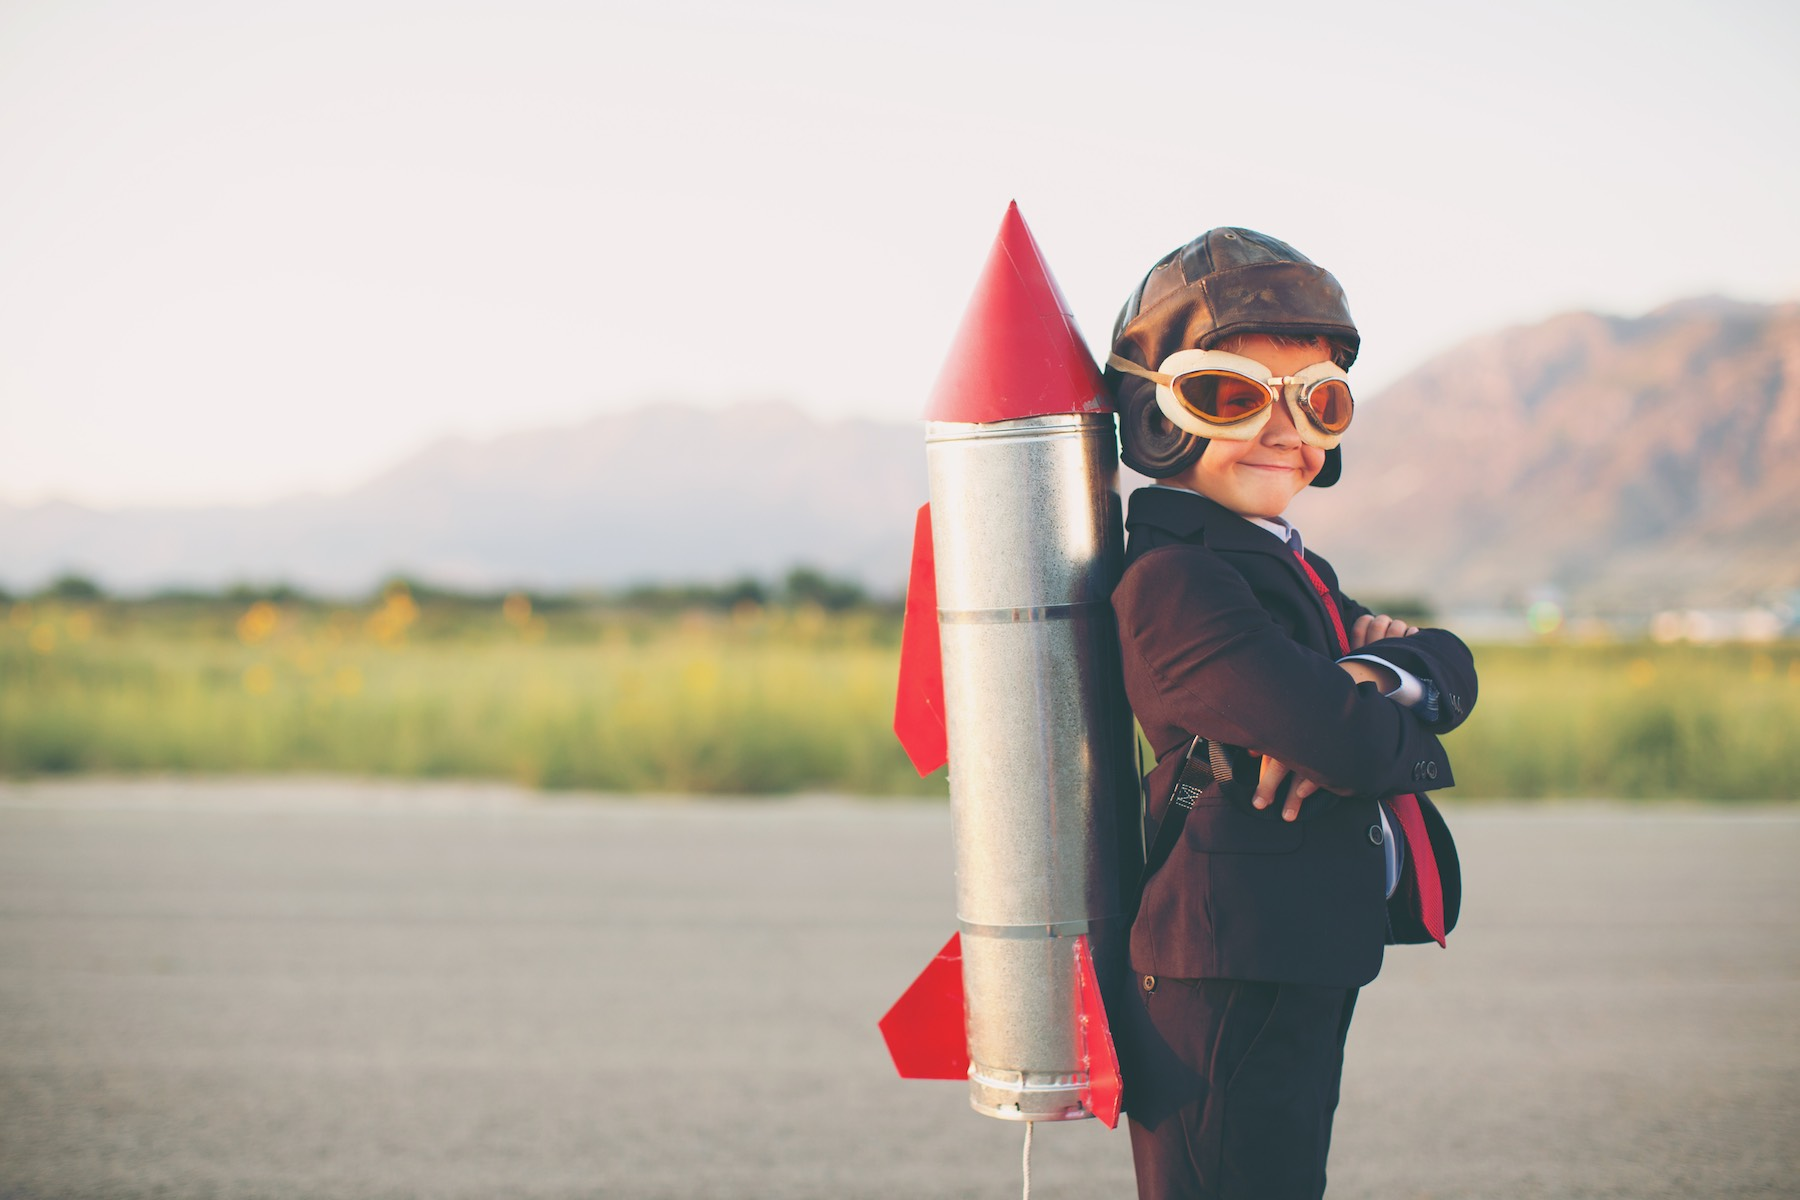 A young business minded boy is wearing a business suit, space helmet with a rocket strapped to his back. His hands are on his hips and he is smiling at the camera standing on blacktop. Plenty of copy space for your innovative type. Image taken in Utah, USA.